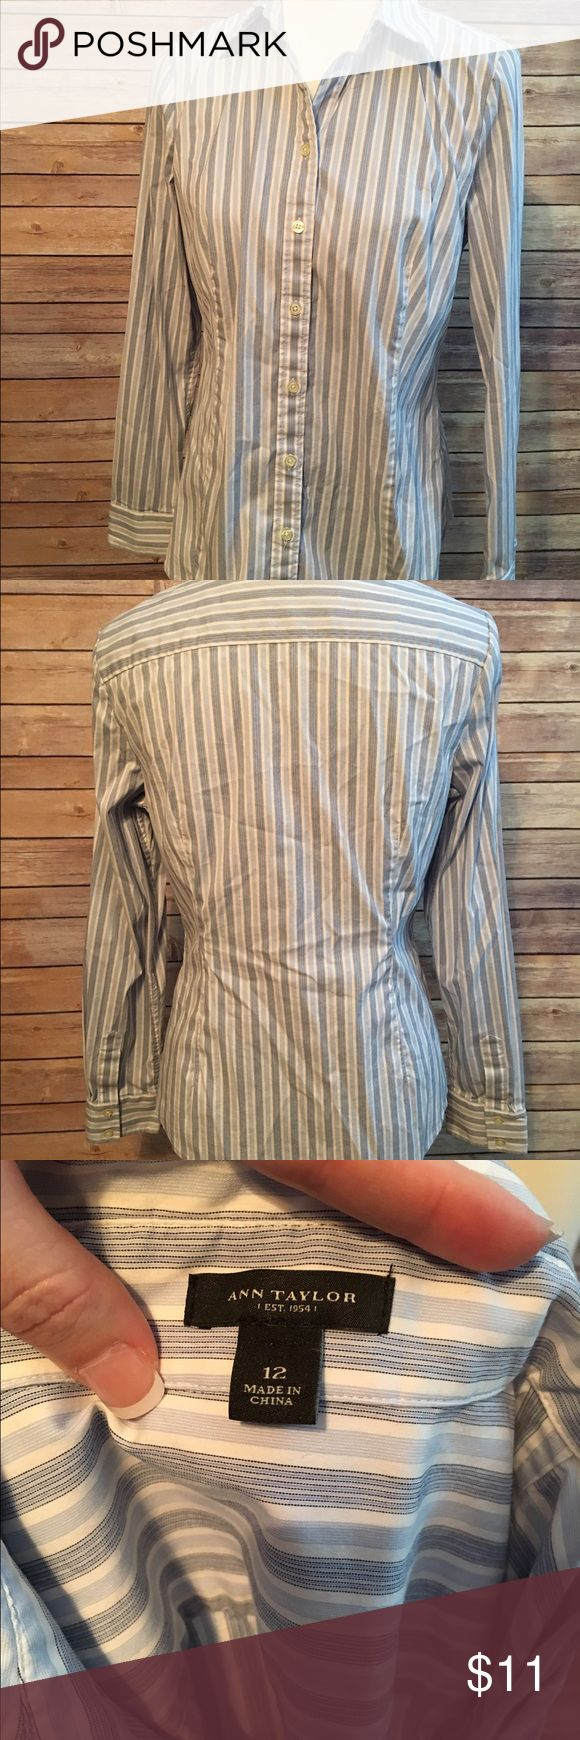 Ann Taylor Button Down Size 12 Ann Taylor // Darts in front // Flattering slim fit *entire outfit available in my closet Ann Taylor Tops Button Down Shirts